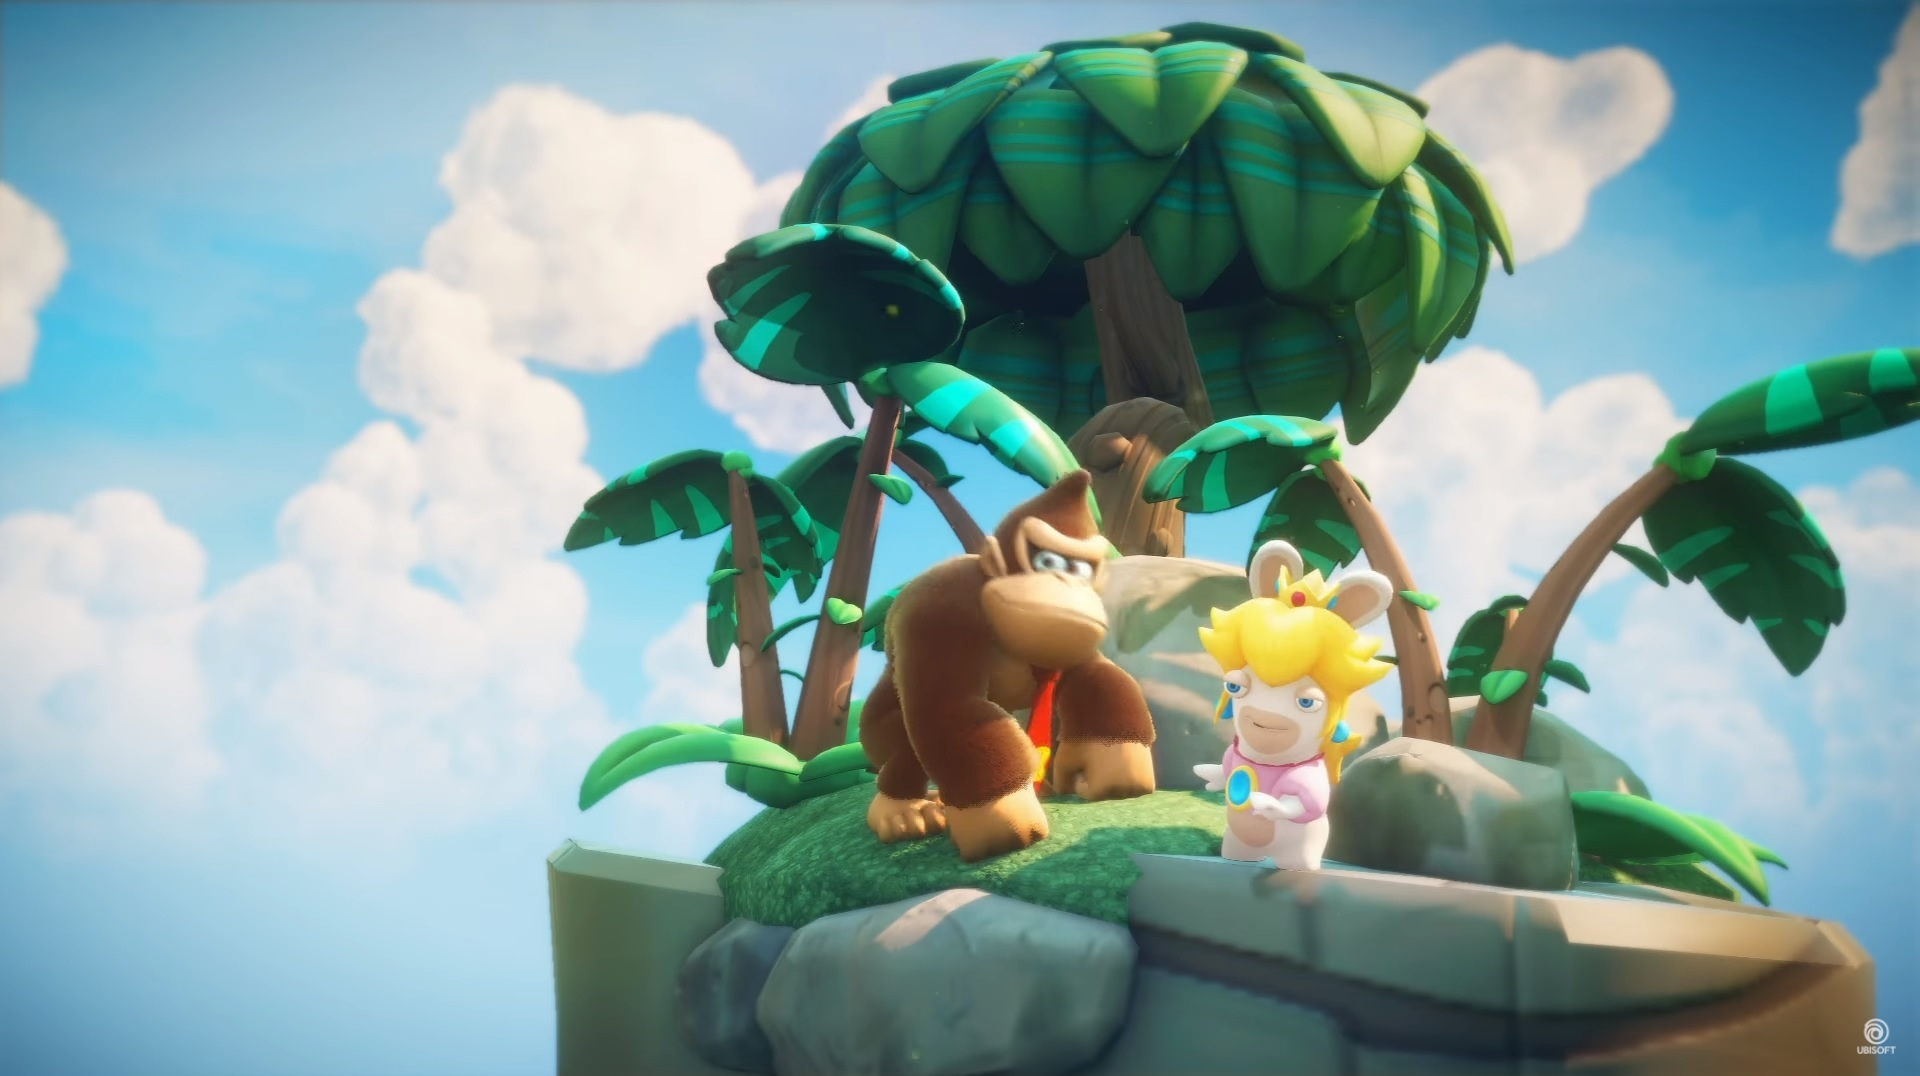 Donkey Kong is joining Mario + Rabbids Kingdom Battle as a playable hero screenshot